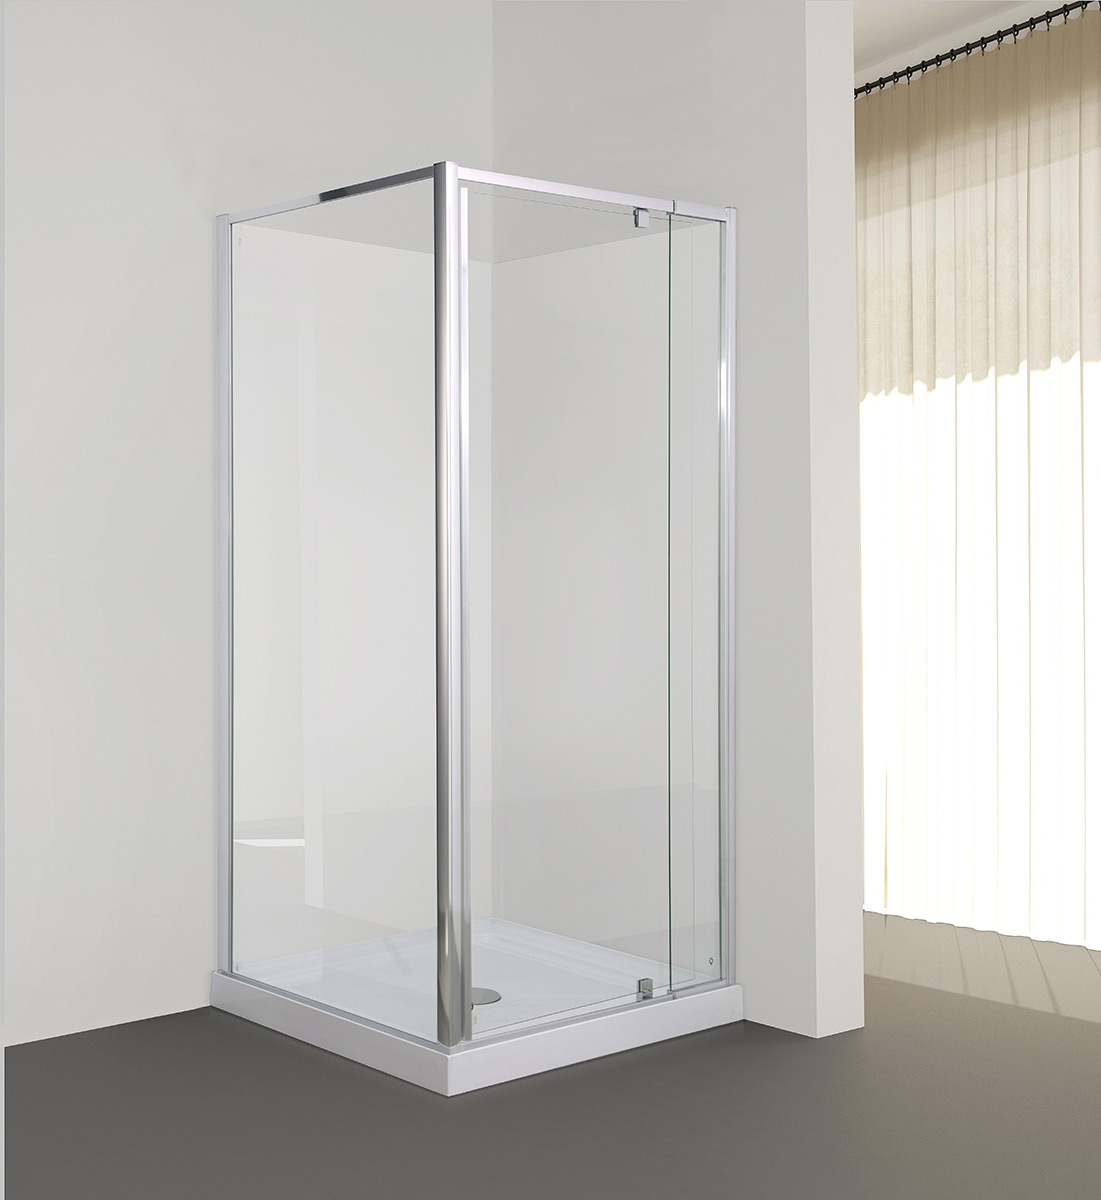 Milford 800x900 900x800 Corner Pivot Door Shower In Chrome